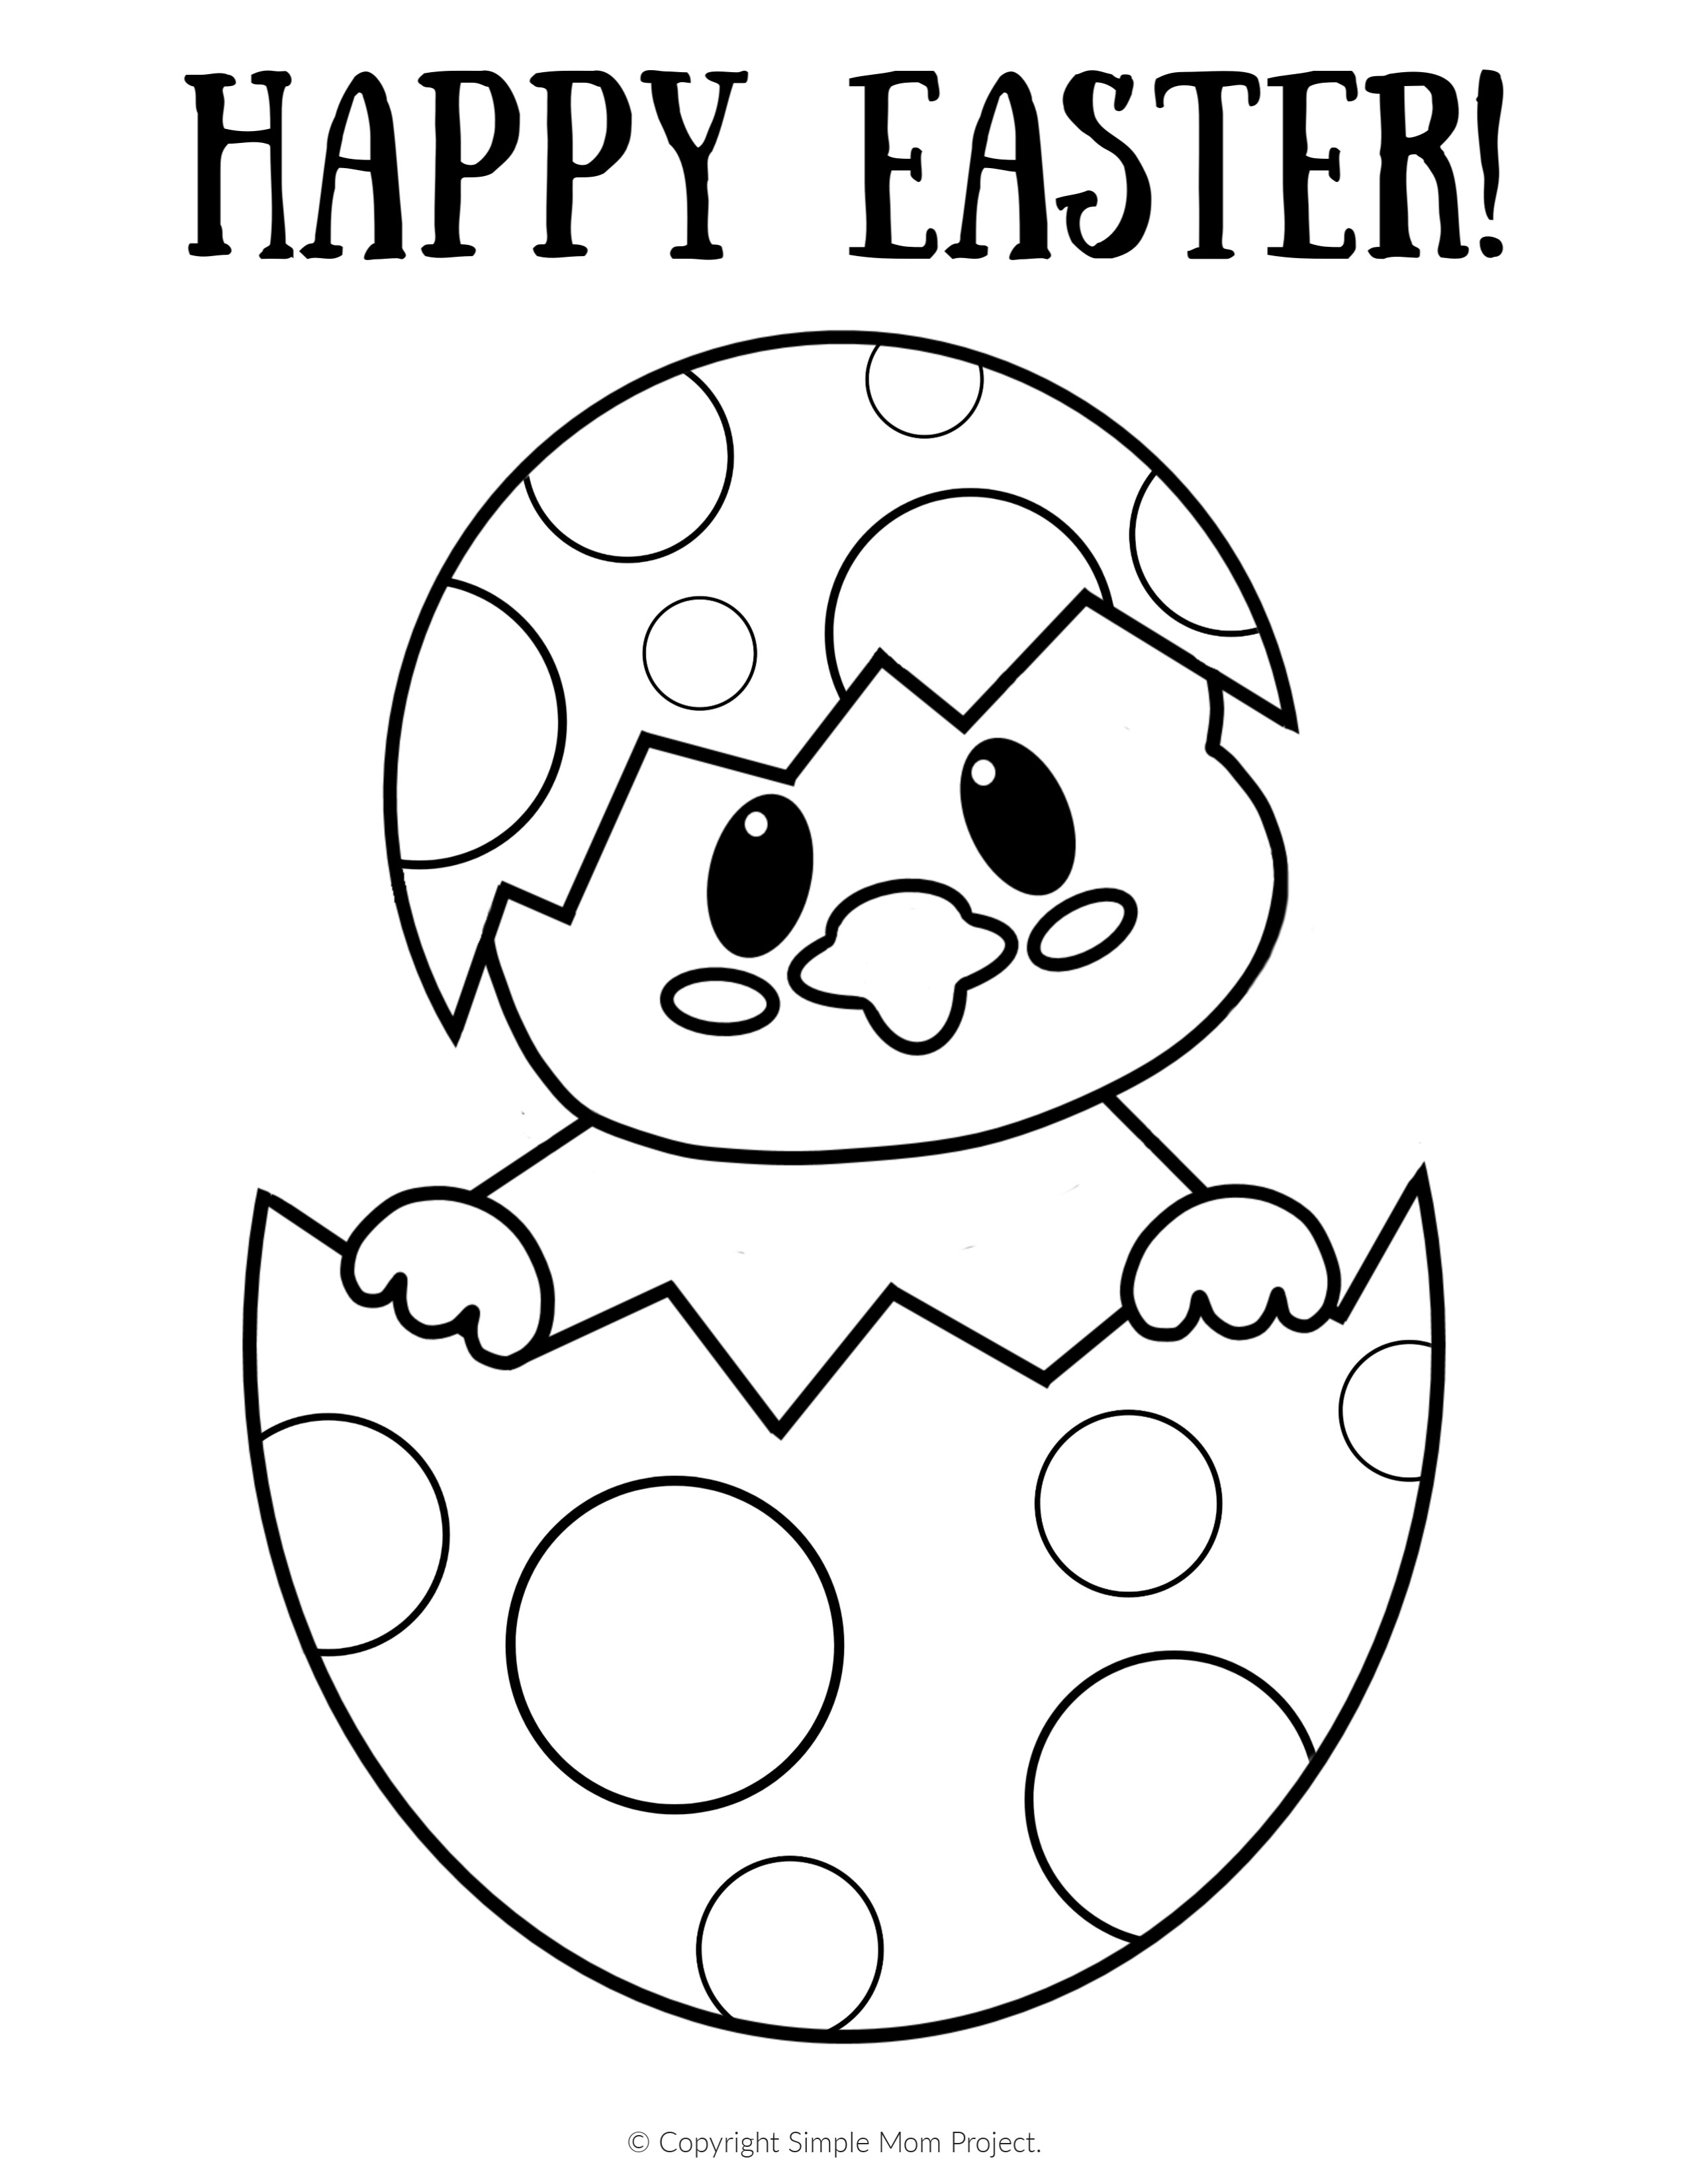 Easter Egg Coloring Pages For Toddlers  Easy Easter Egg Q tip Painting FREE Printable Template